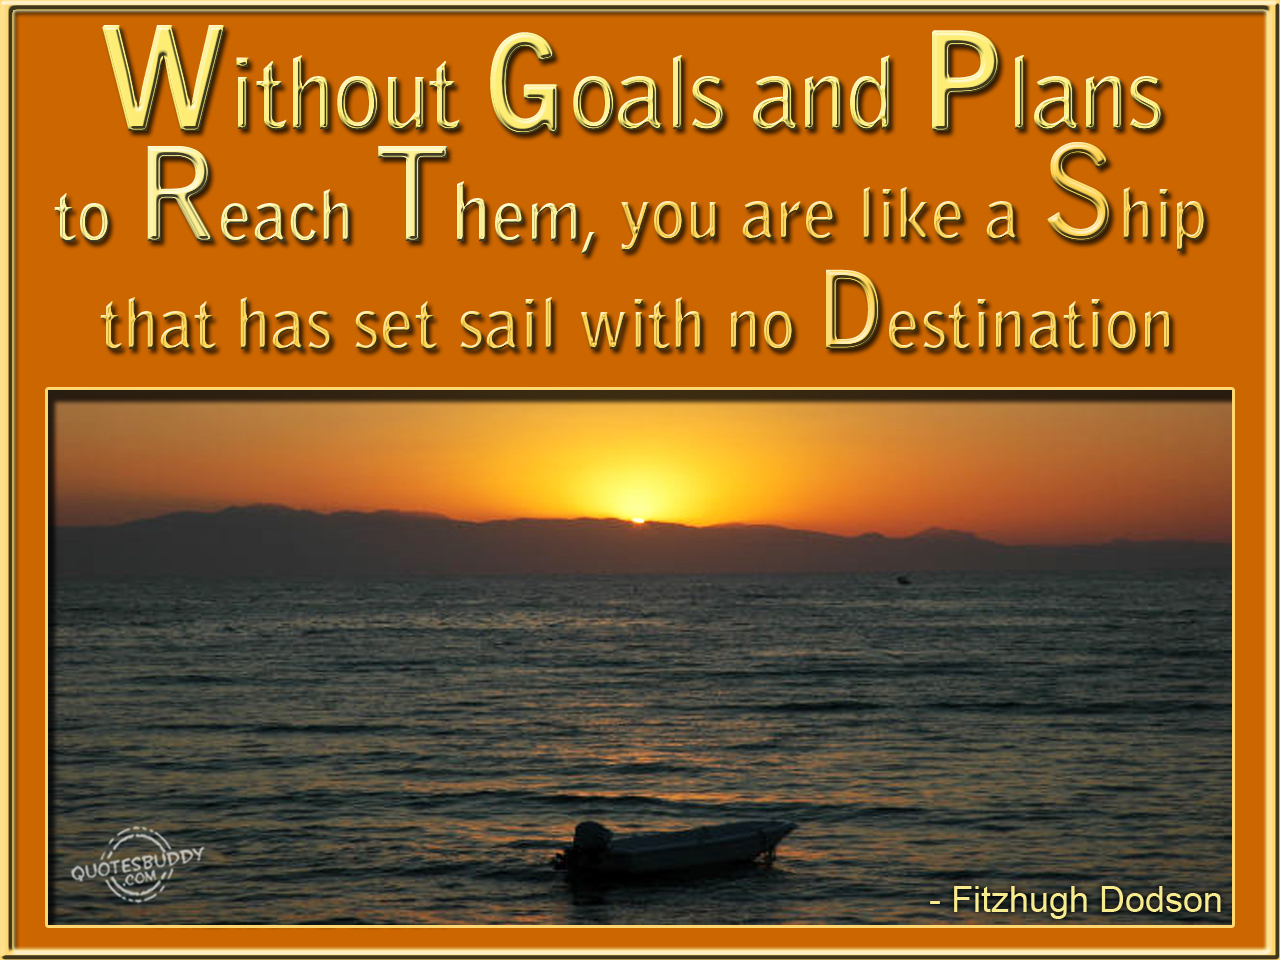 Without Goals and Plans to Reach Them,You are like a Ship that has set sail with no Destination ~ Goal Quote